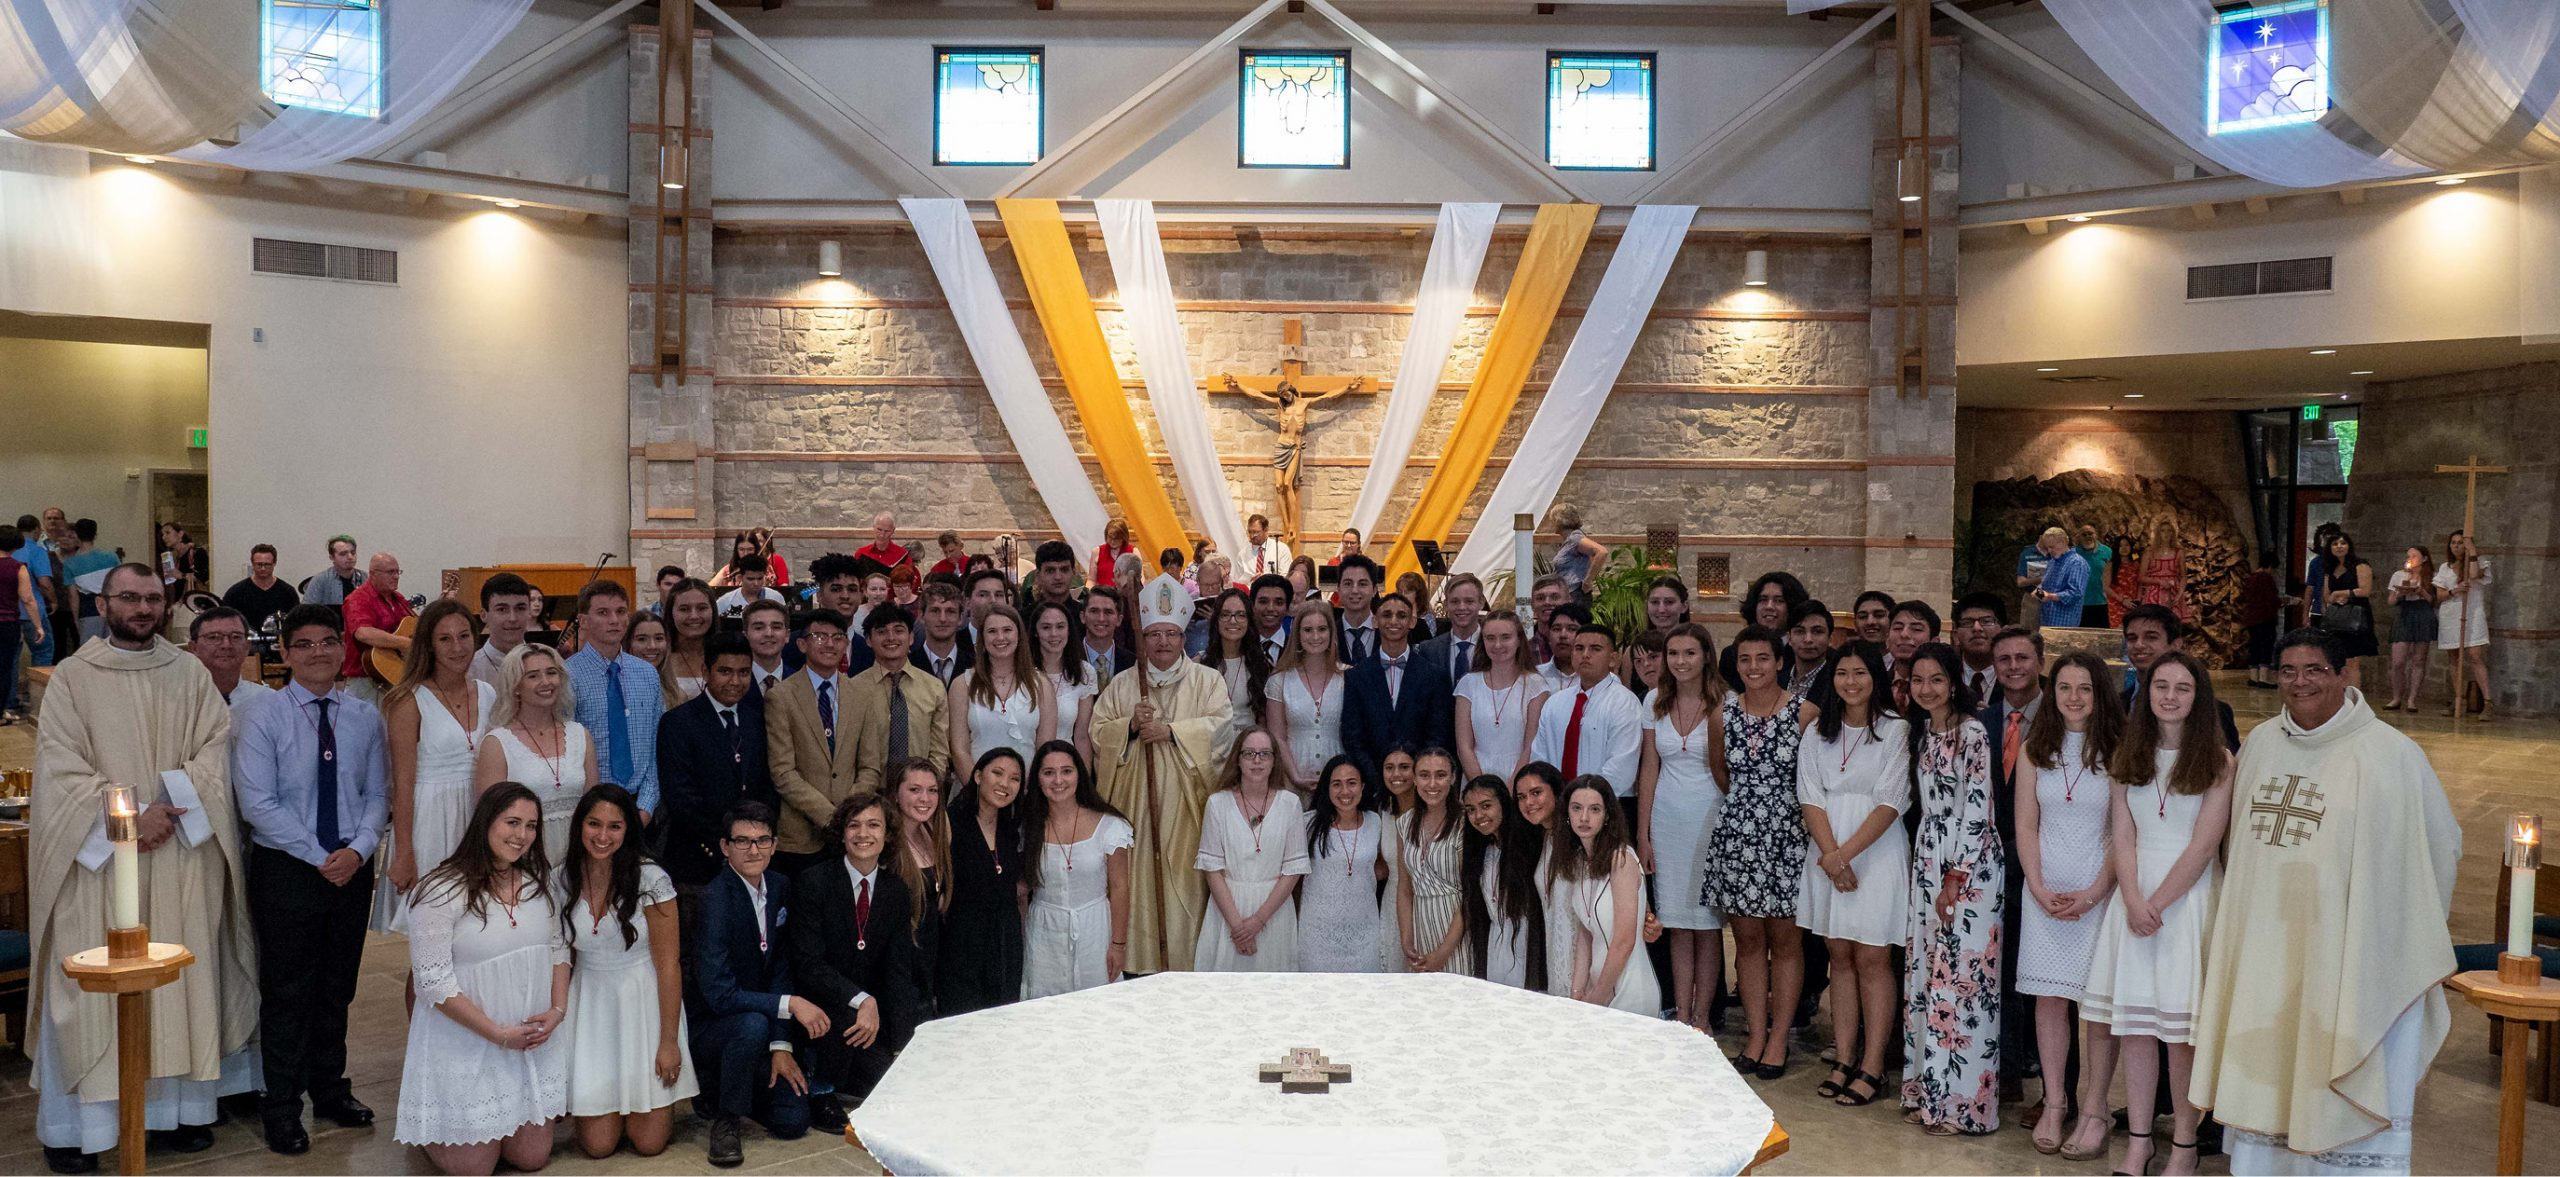 Confirmation-2019-scaled